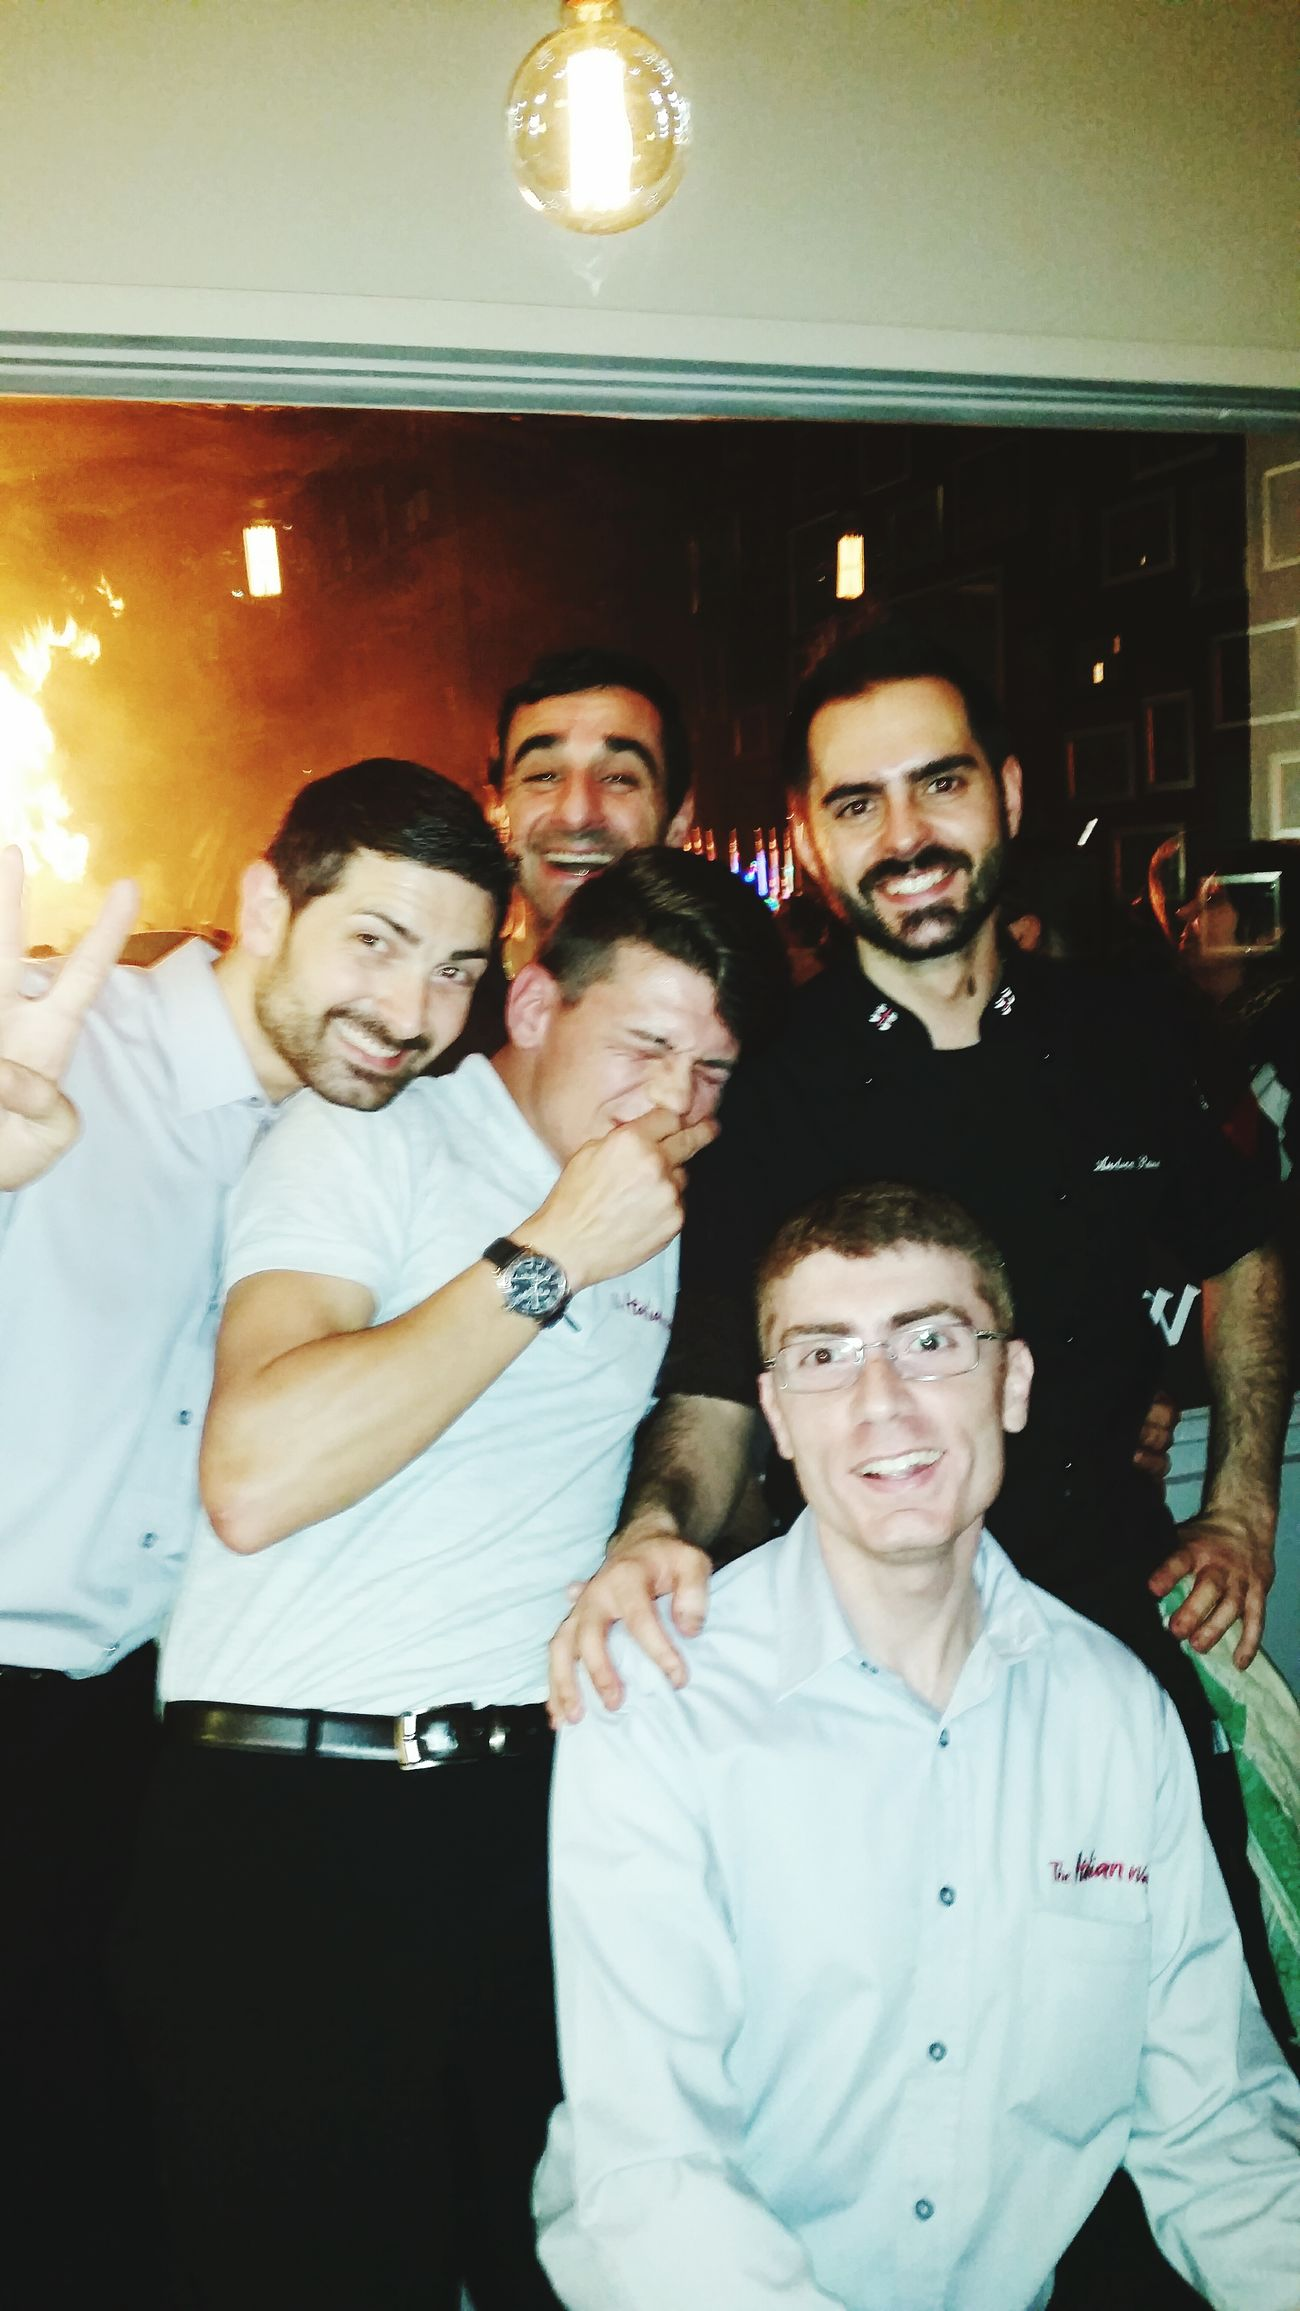 Happy People Myfriends Working Hard Laughing GreatNight